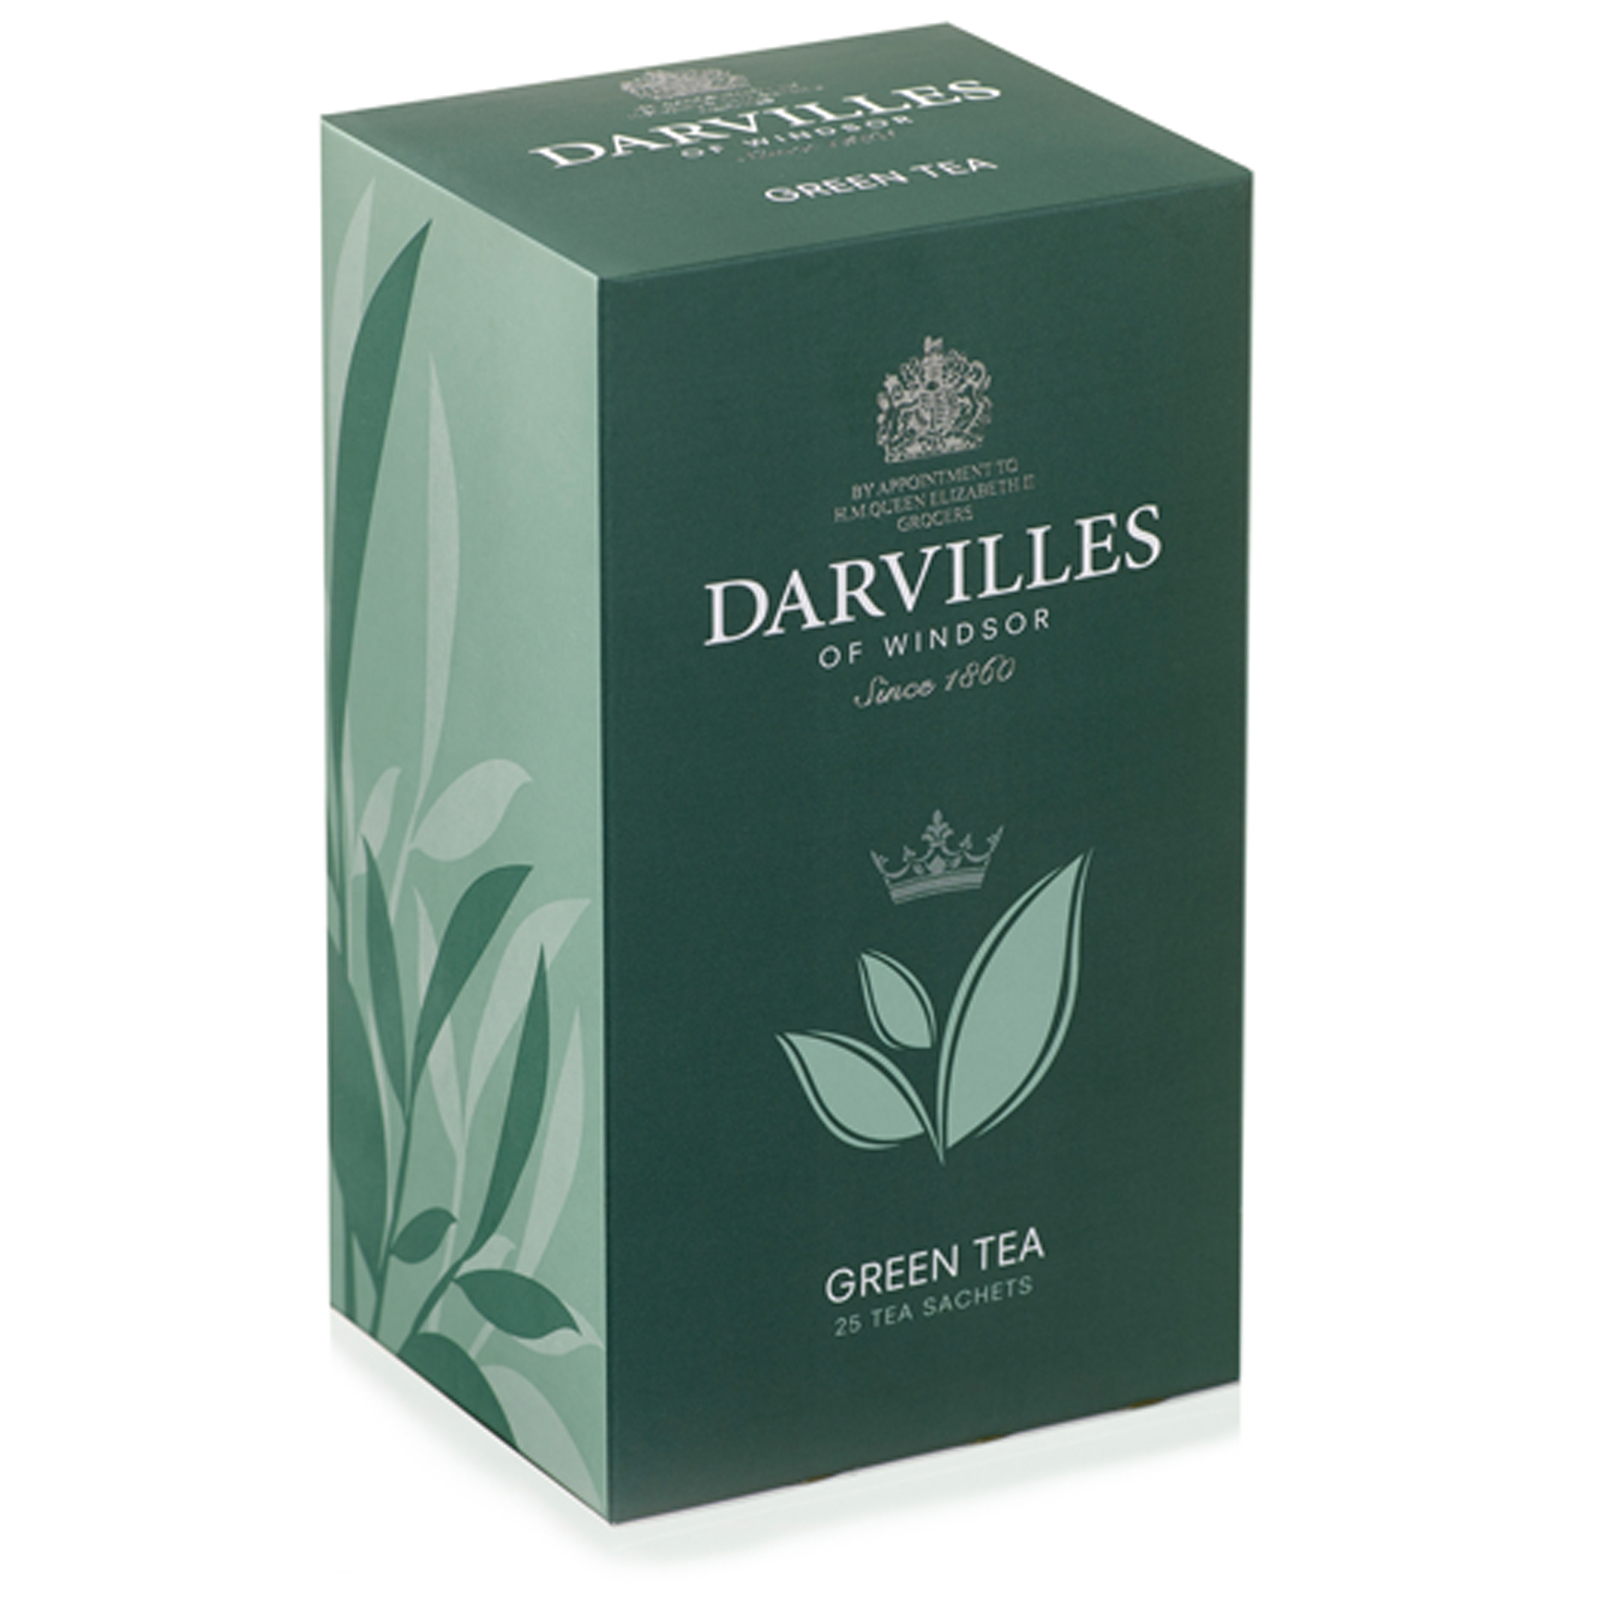 Darvilles of Windsor  Green Tea  25 Sachet Box 50gm